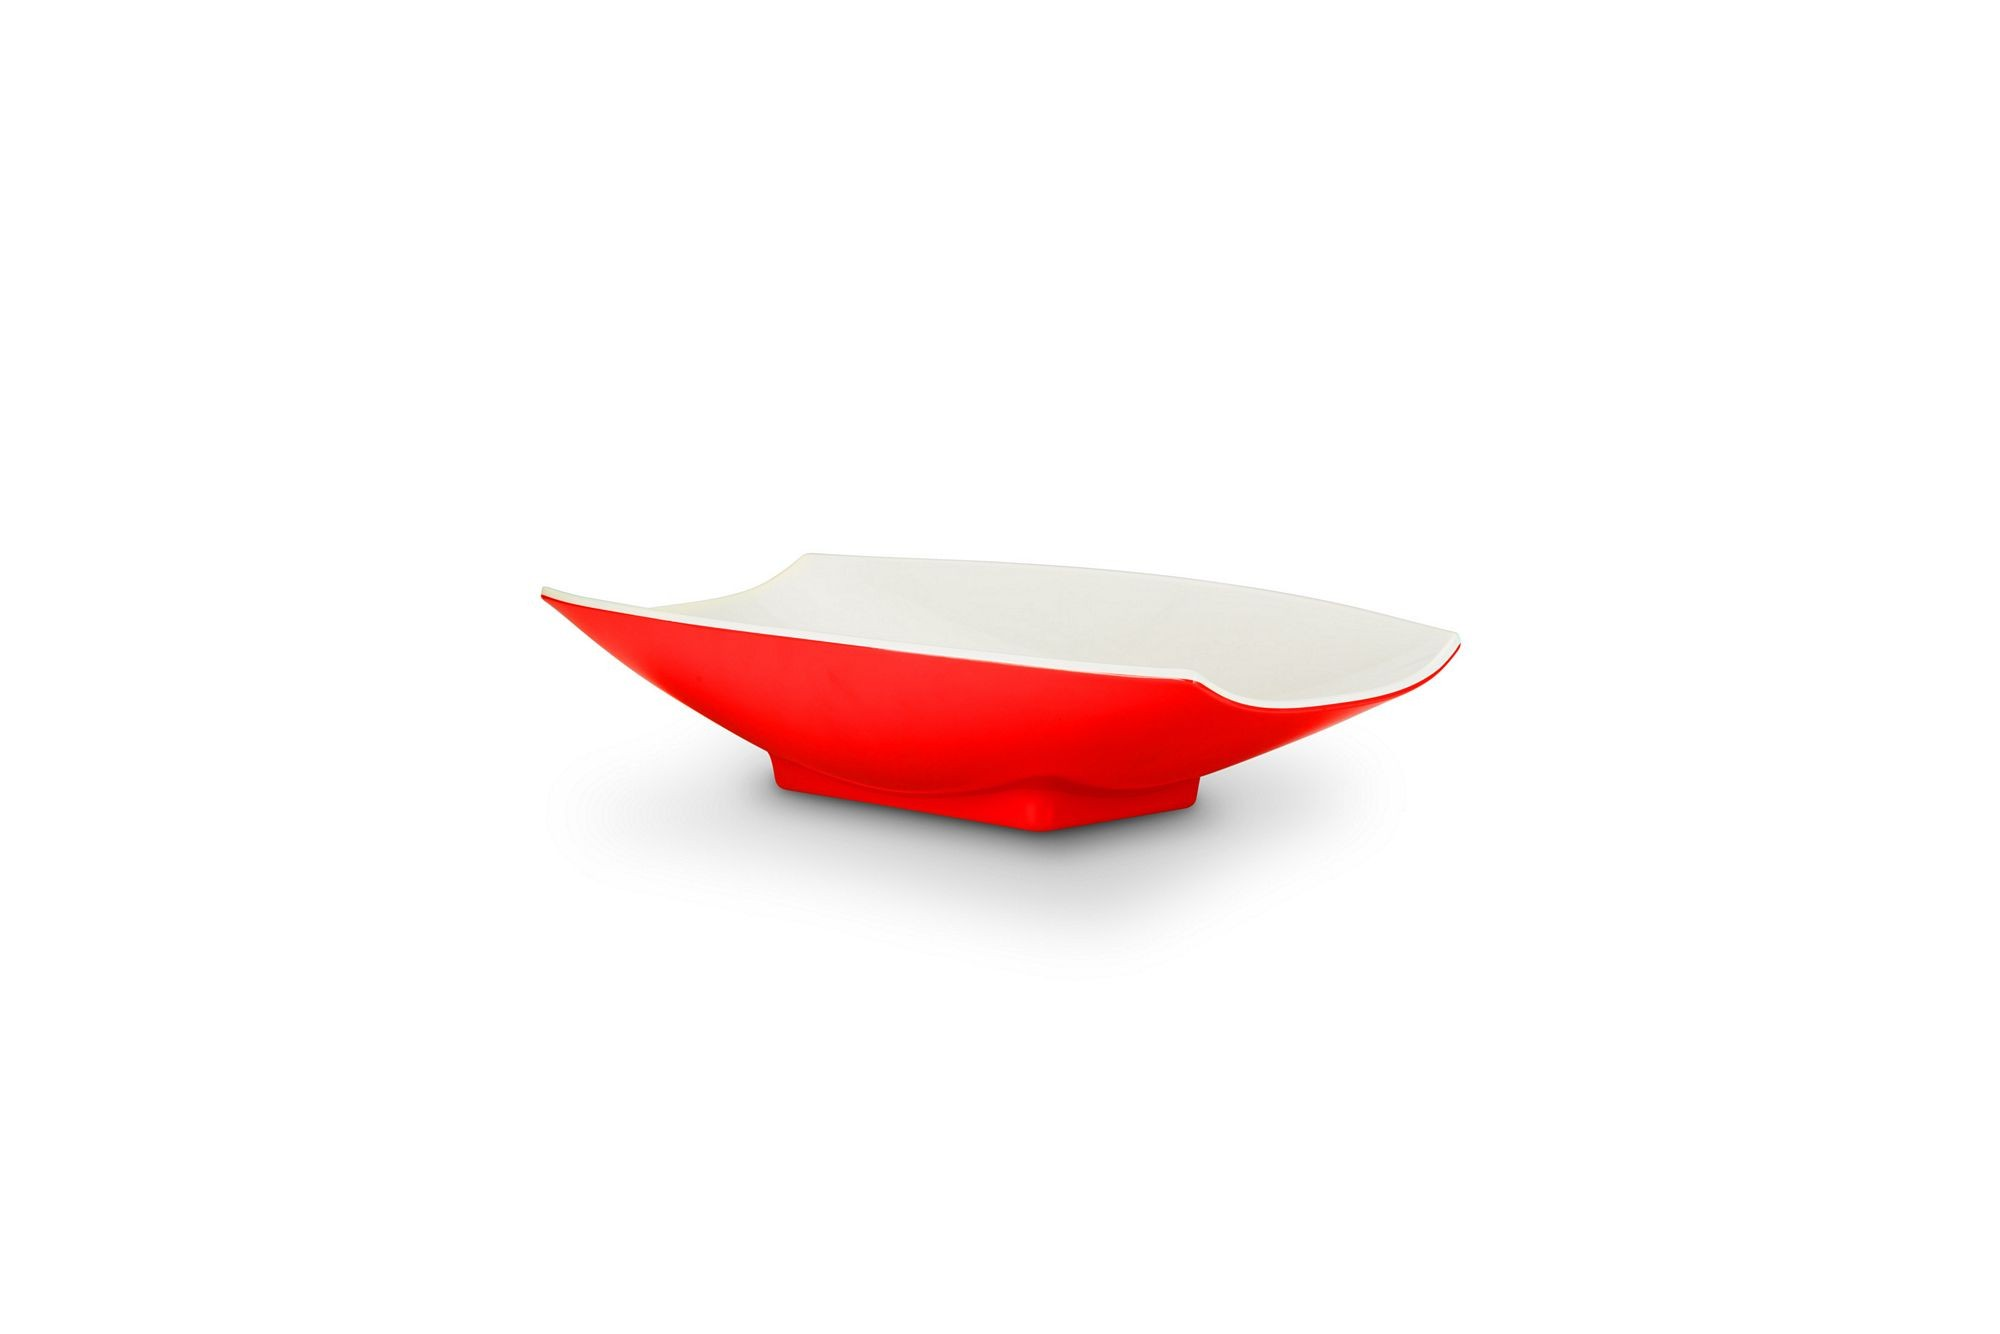 Bon Chef 53702-2ToneRed Melamine Curves Bowl, Red Outside/White Inside 24 oz.